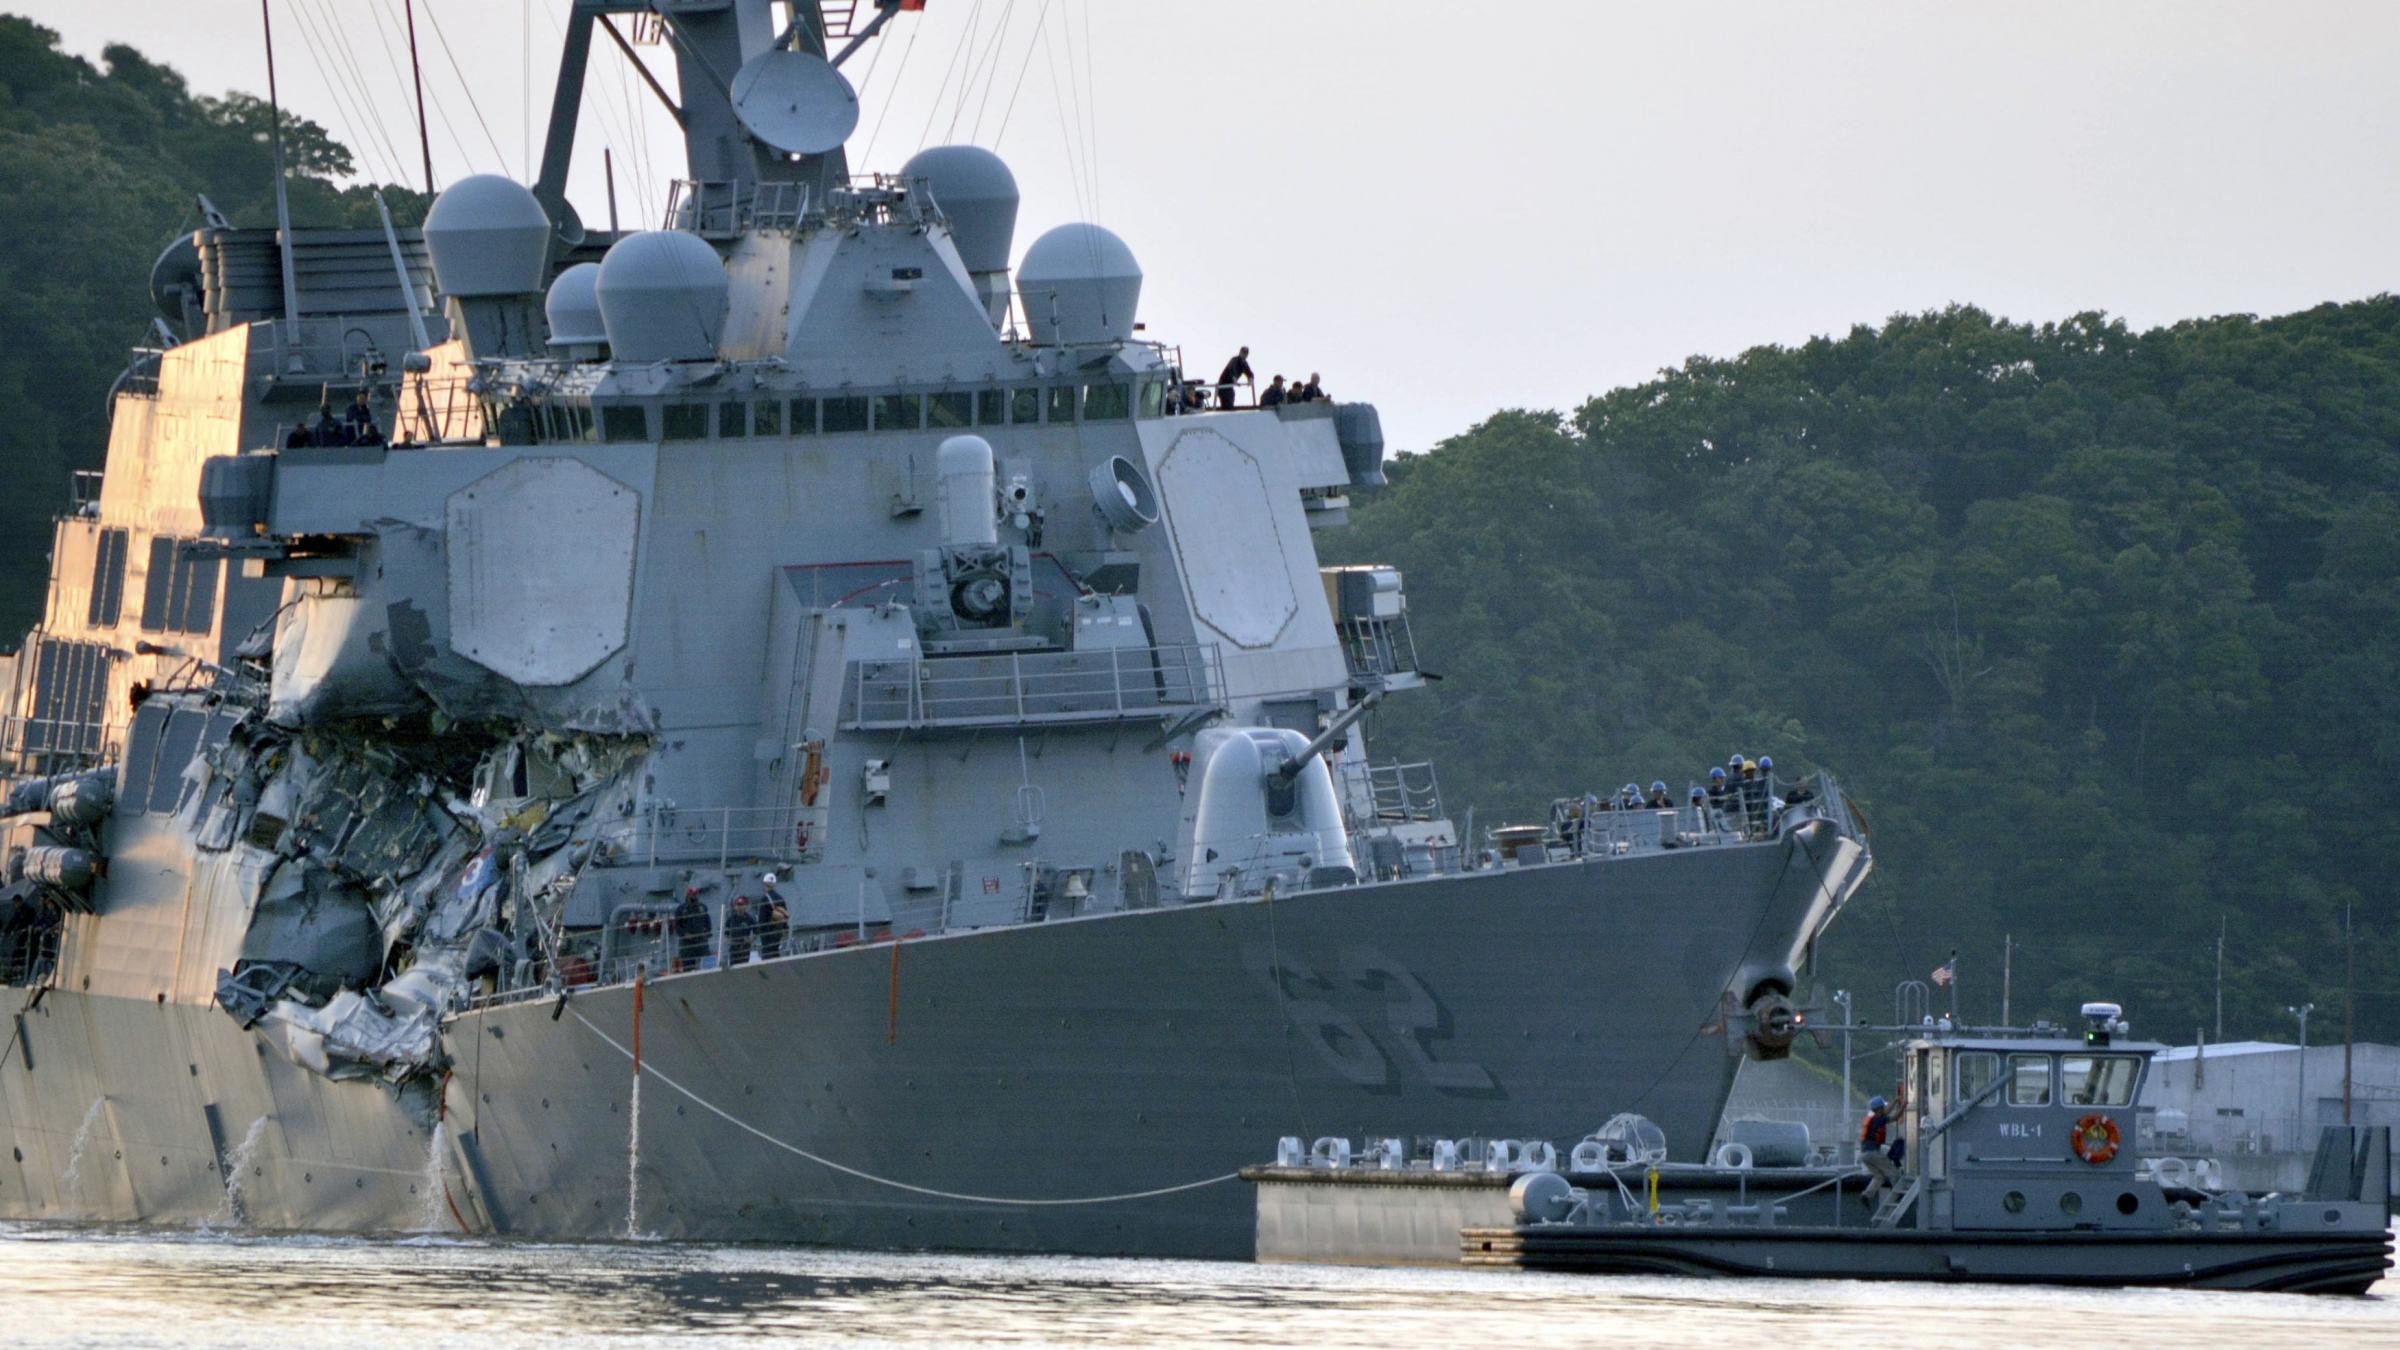 US Navy says destroyer collided at 2:20 am